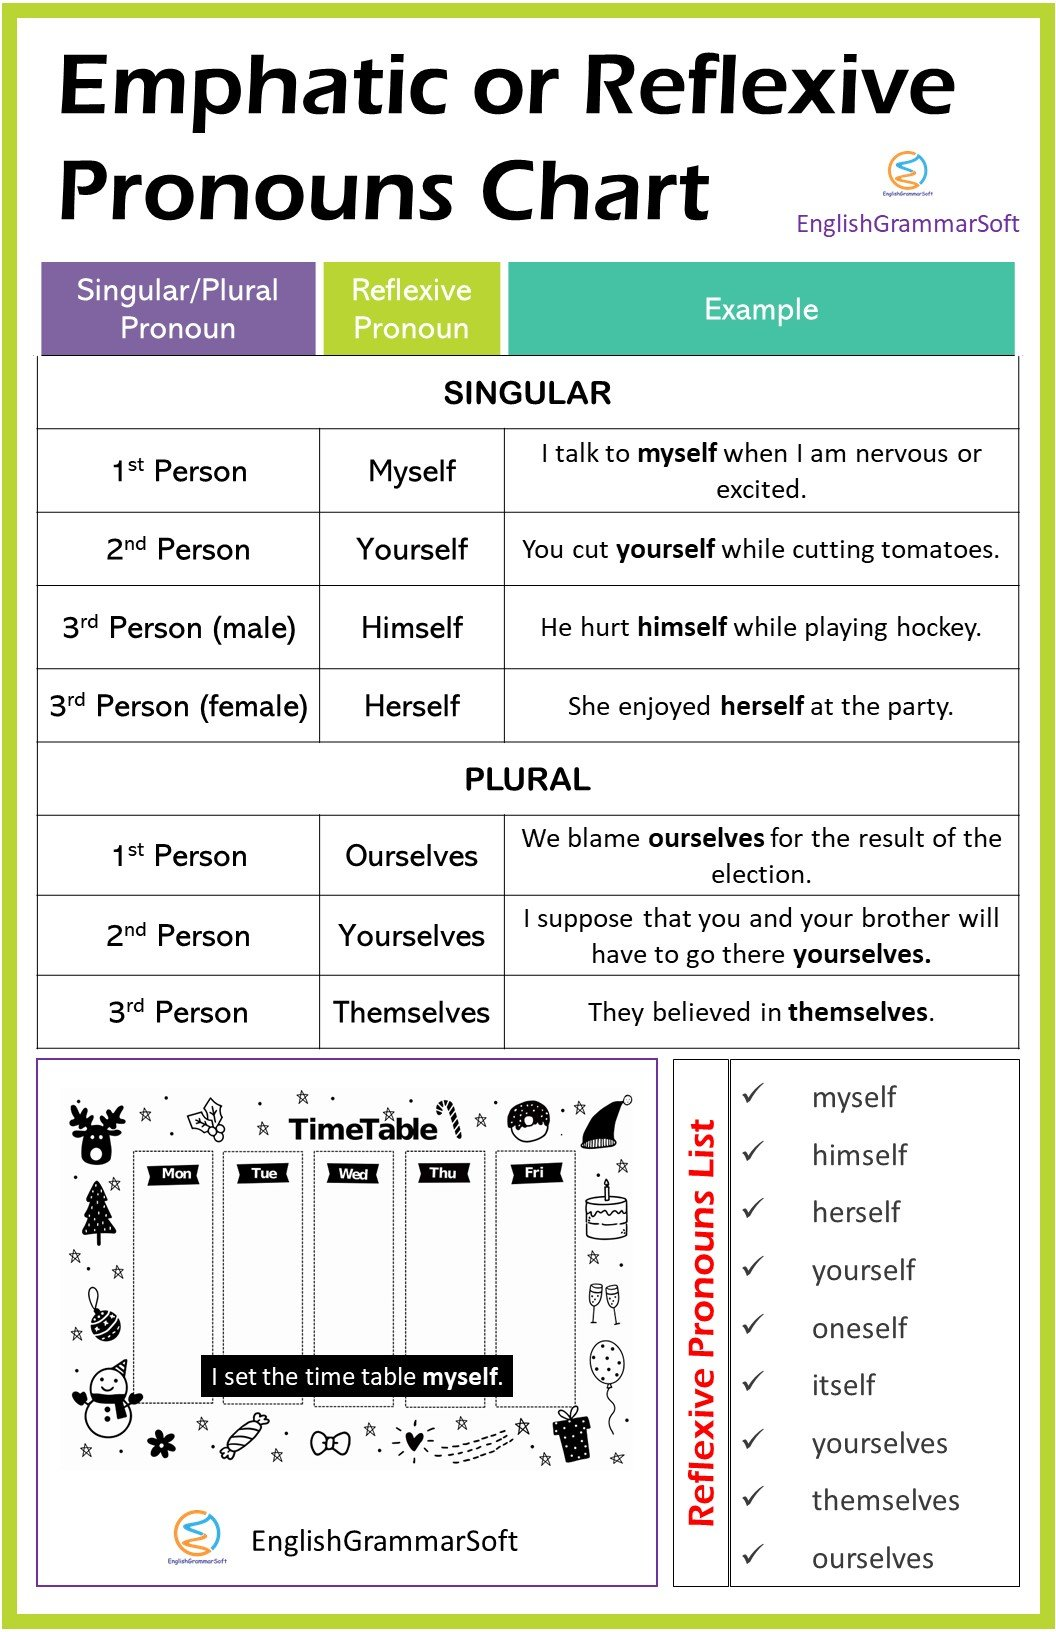 Emphatic or Reflexive Pronouns Chart and List